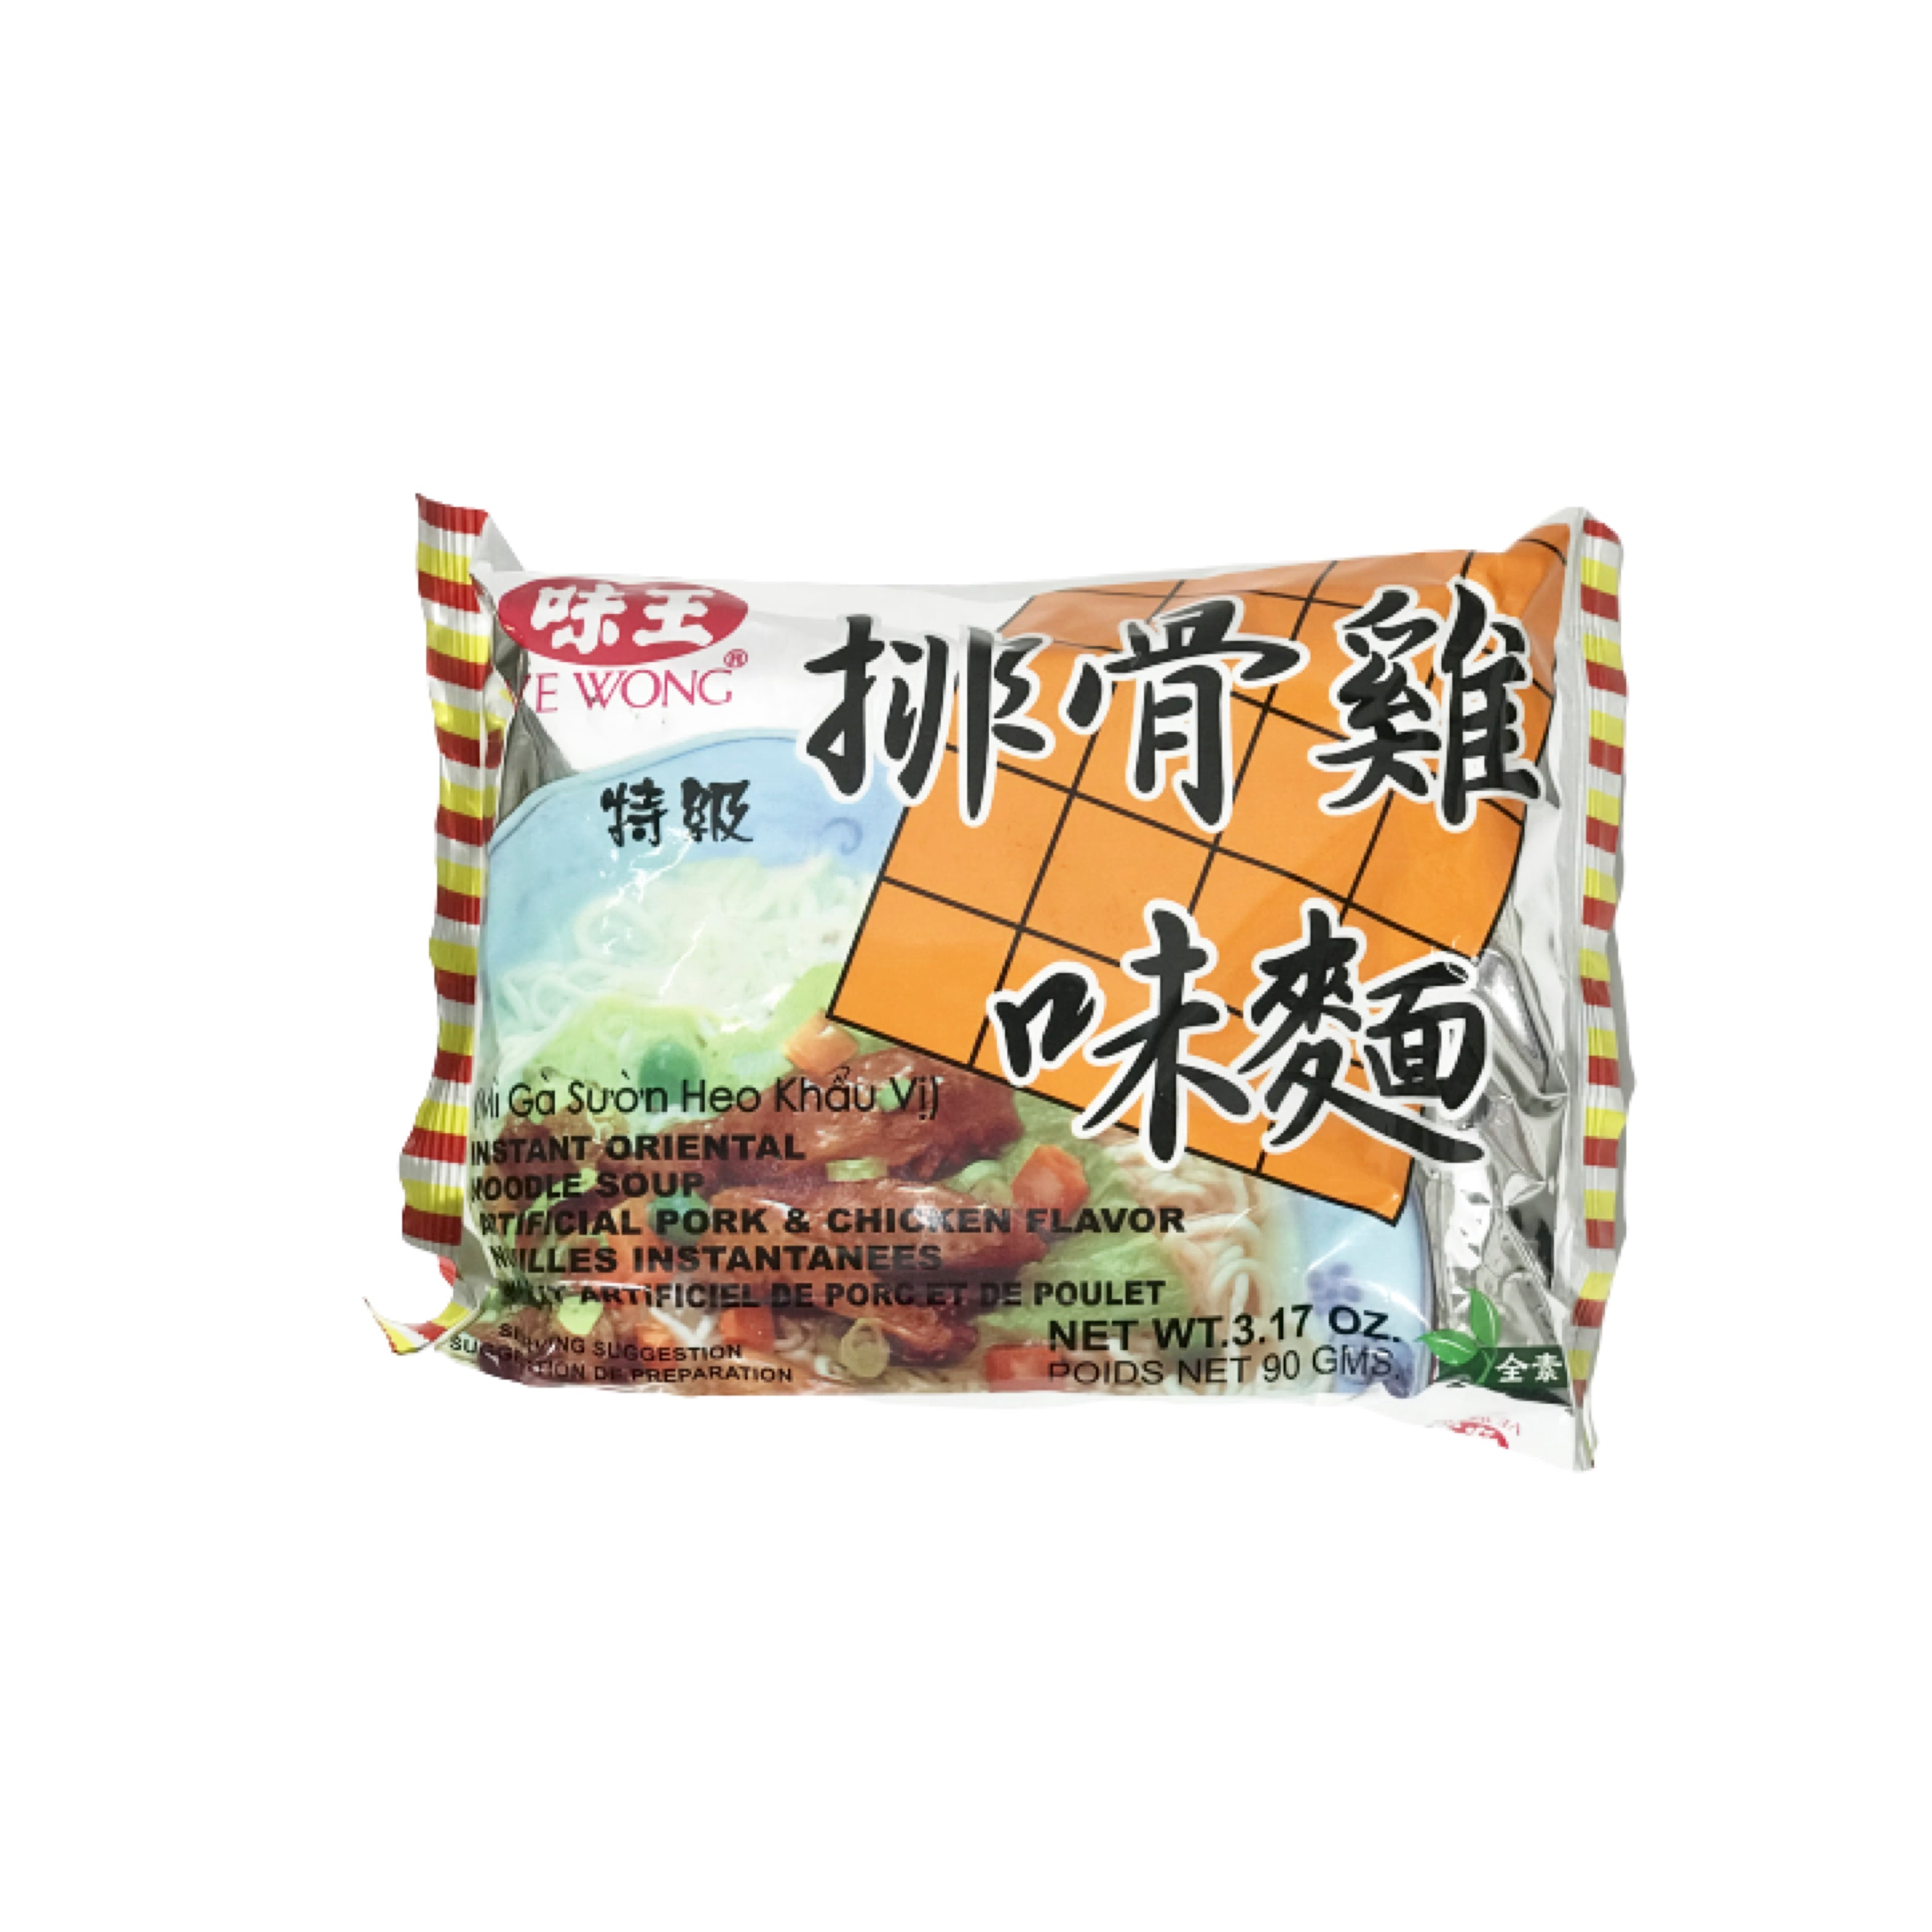 WeiWong Pork & Chicken Flavor 味王排骨雞味麺